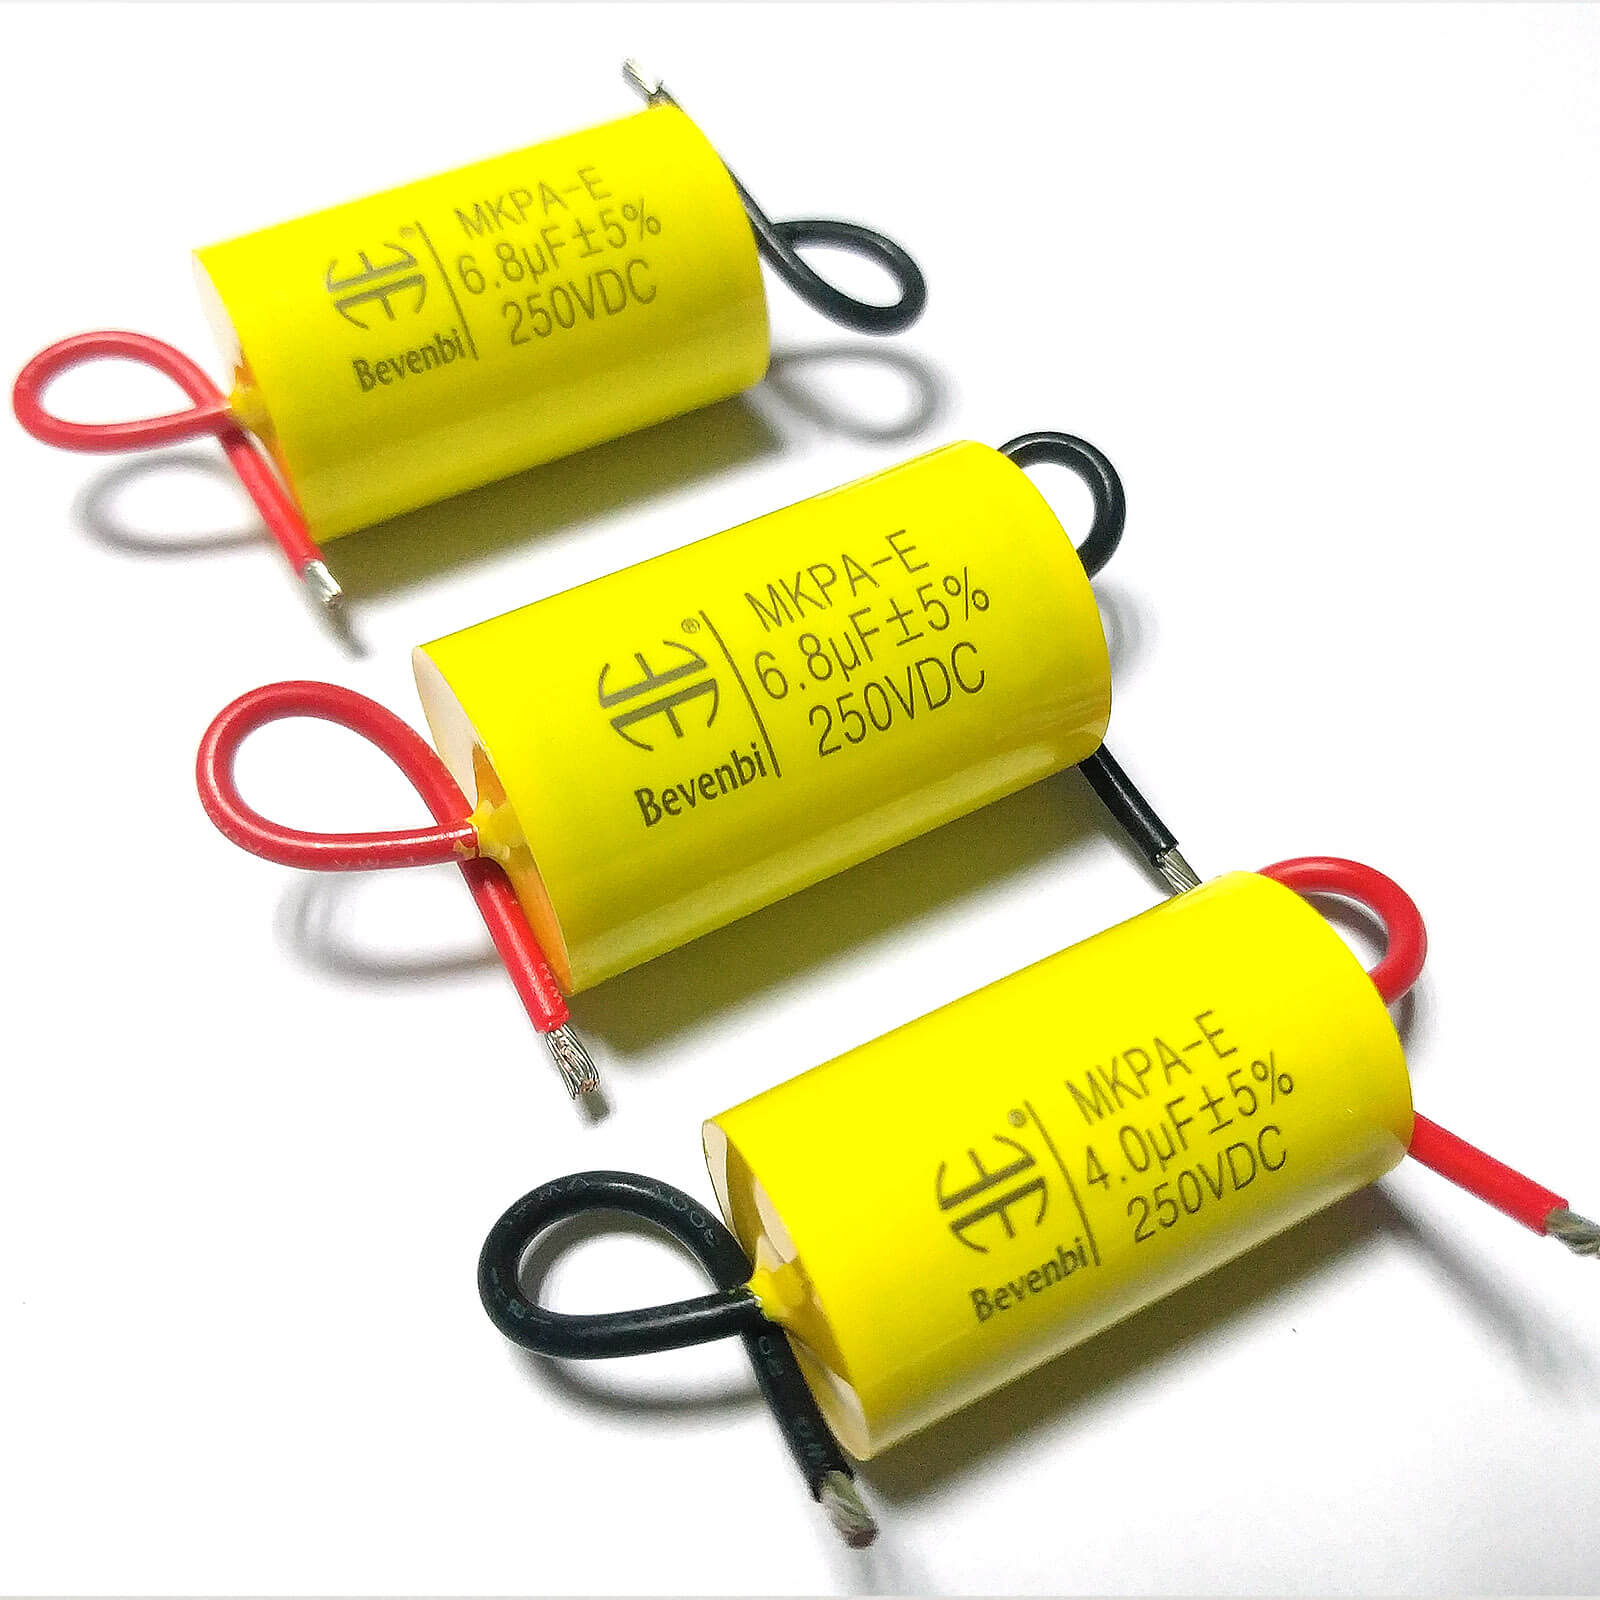 ODM Supplier China High Voltage High Current Metallized Polypropylene Film Capacitor Axial Type Cbb91 Featured Image